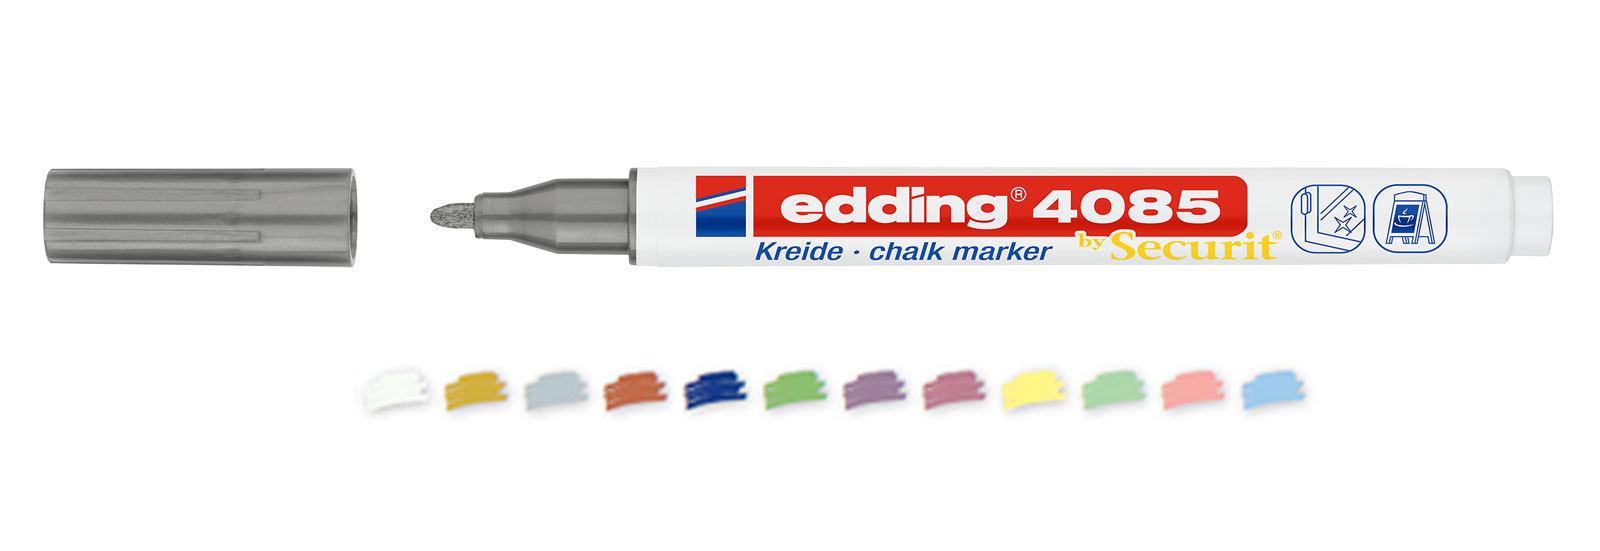 Product image of the chalk marker edding 4085